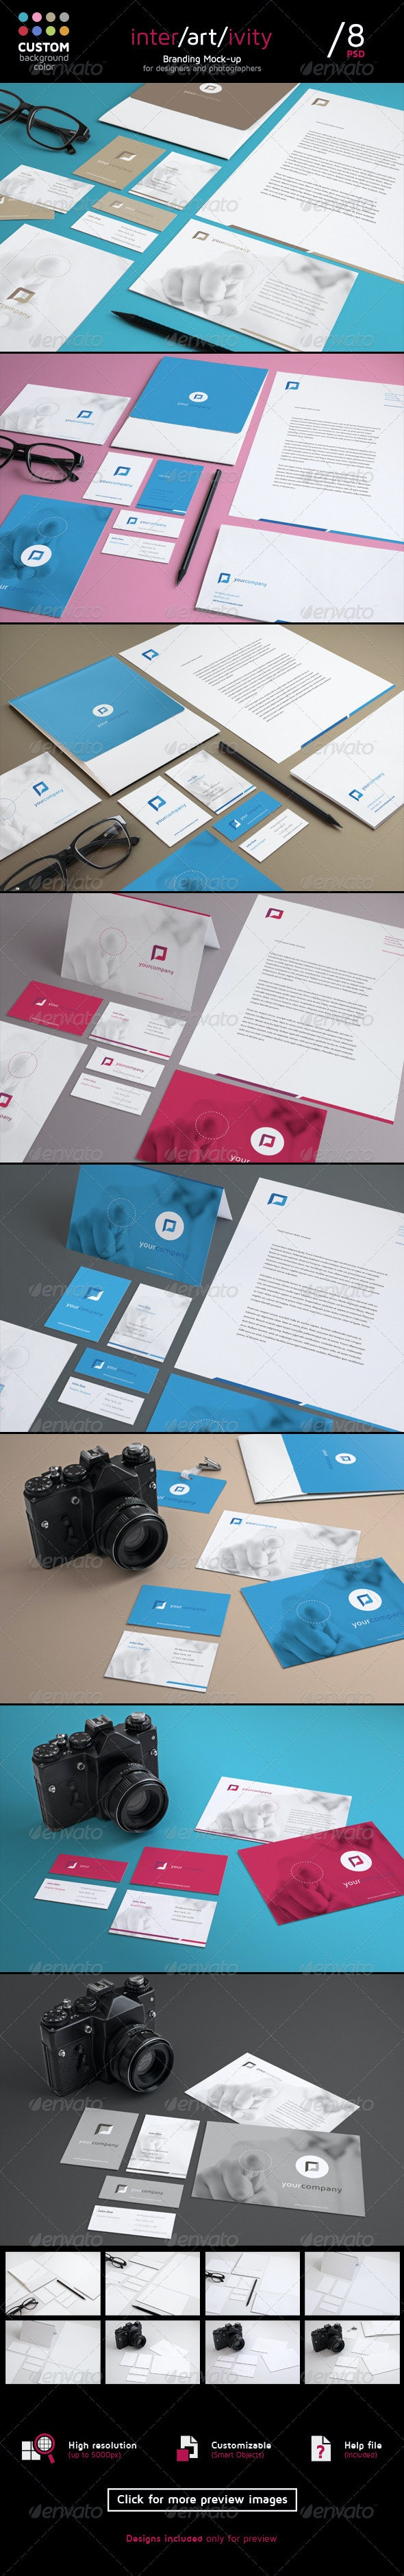 Stationery Mock-Up Set  - Stationery Print